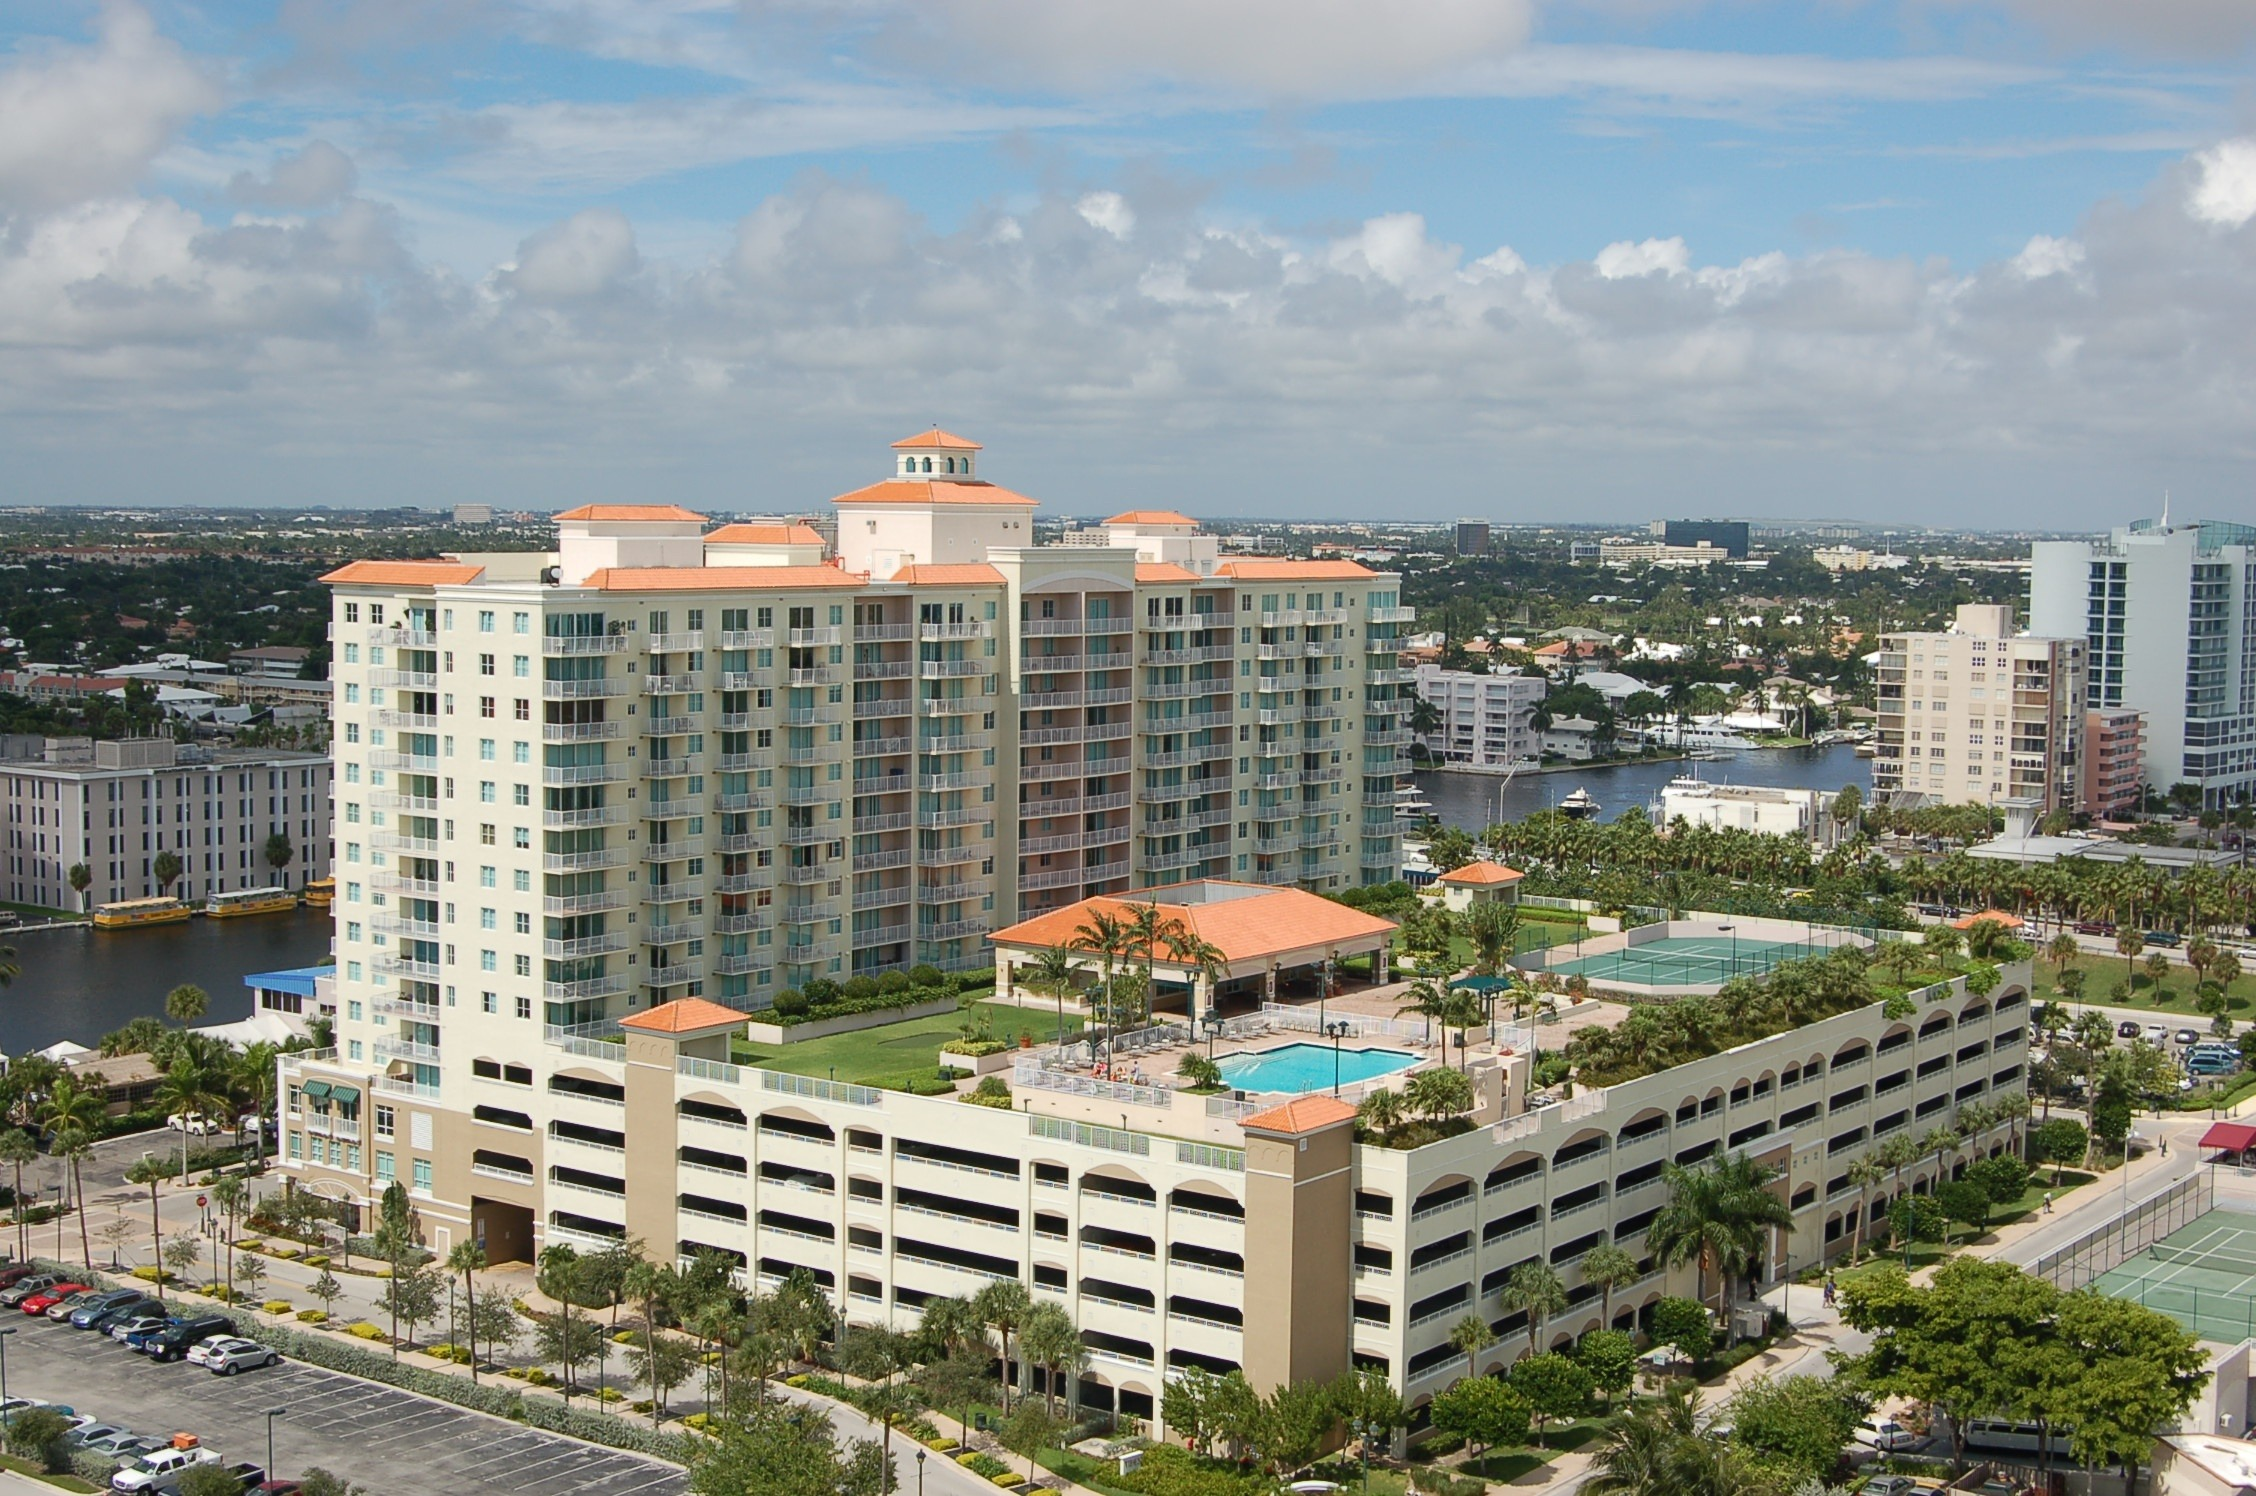 The Tides Condos - Fort Lauderdale, FL Condos for Sale